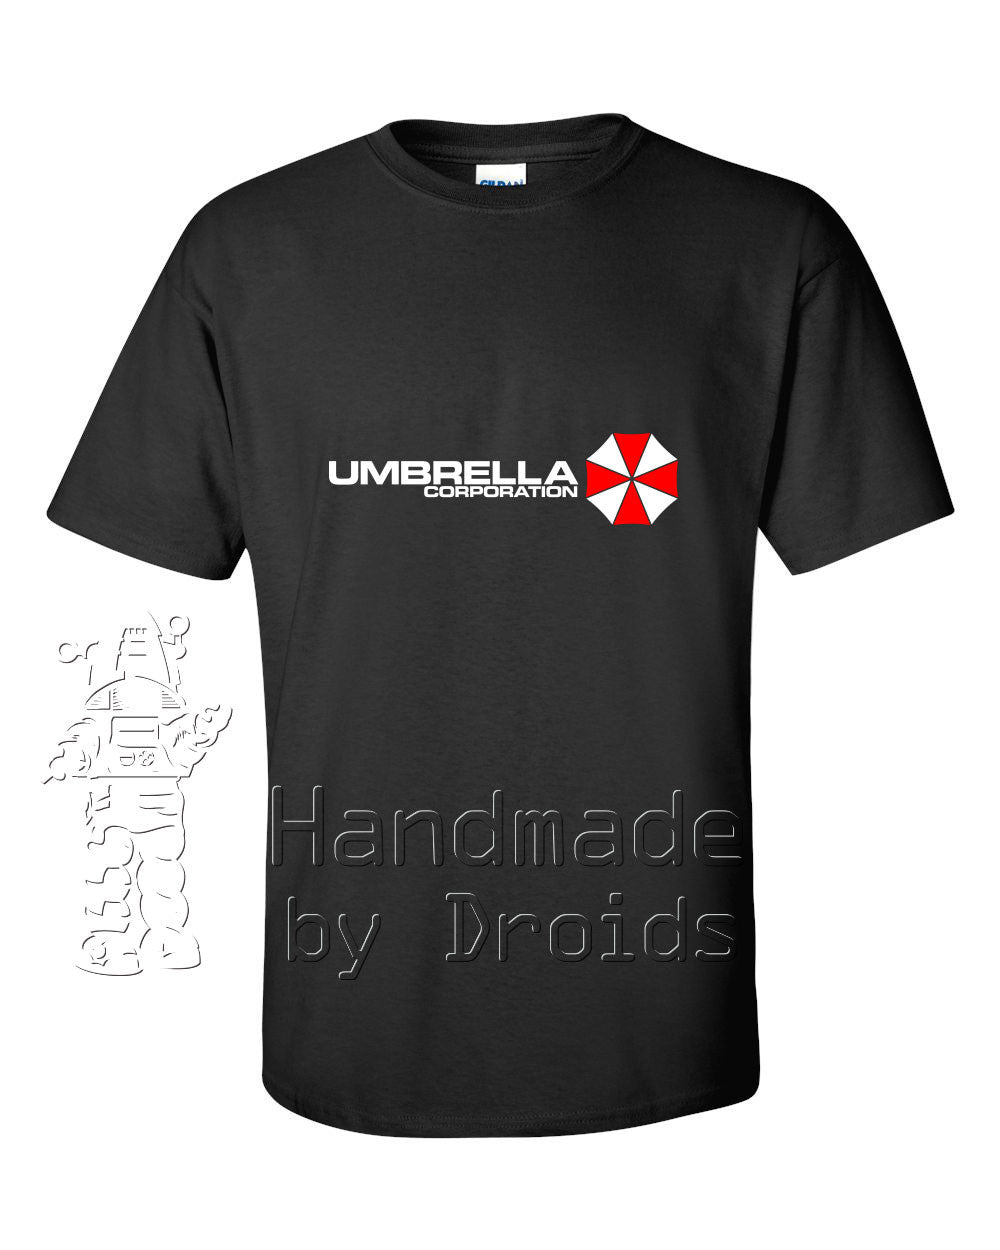 Umbrella Corporation Logo Tee (white and red on black)